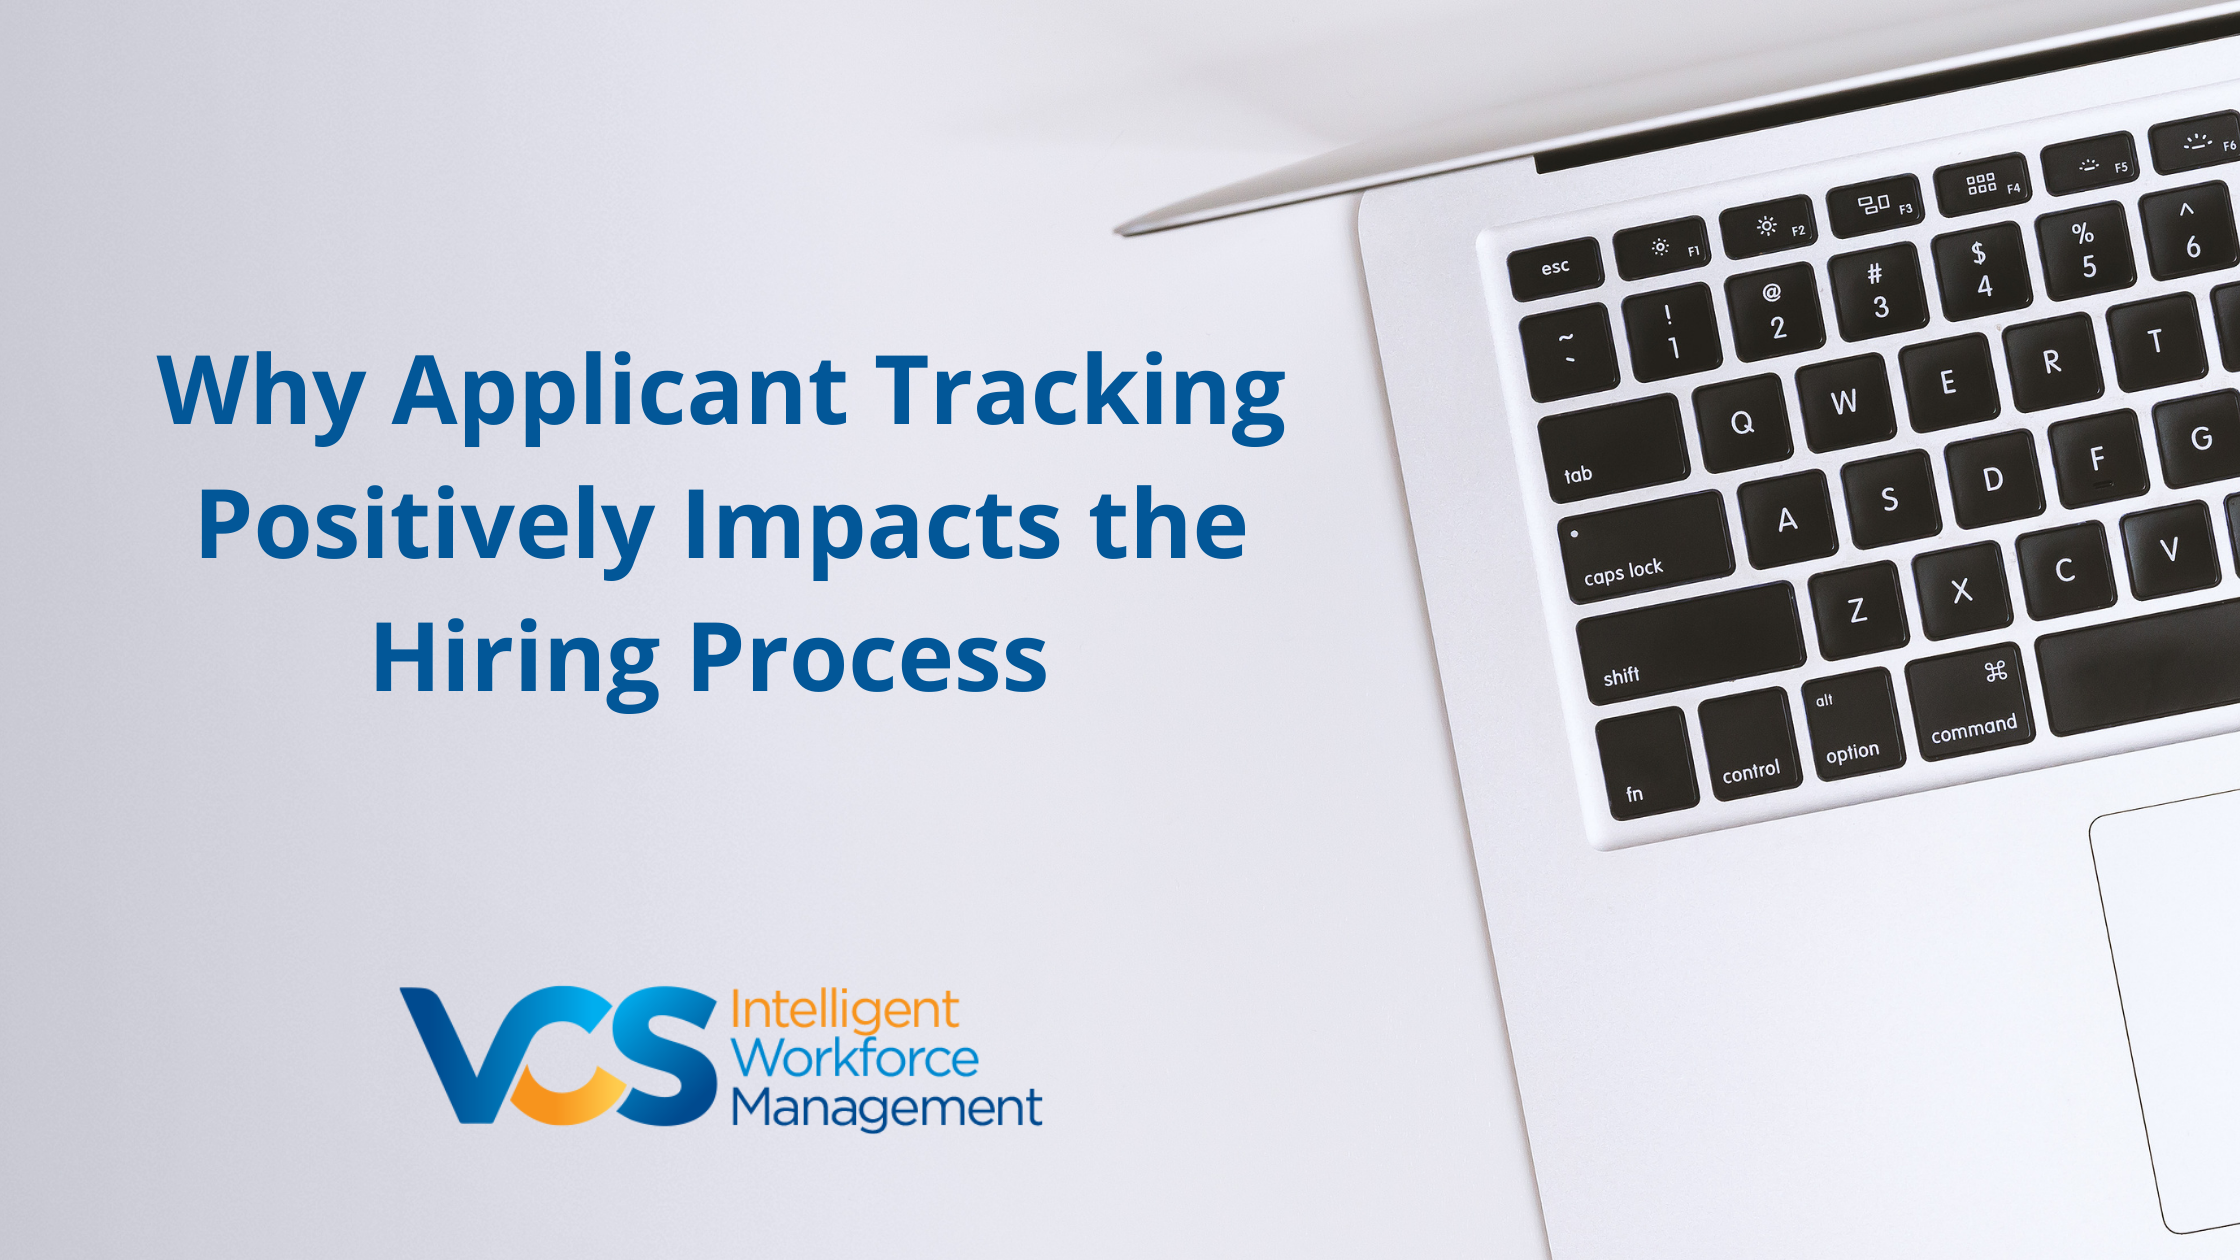 Why Applicant Tracking Positively Impacts the Hiring Process-1